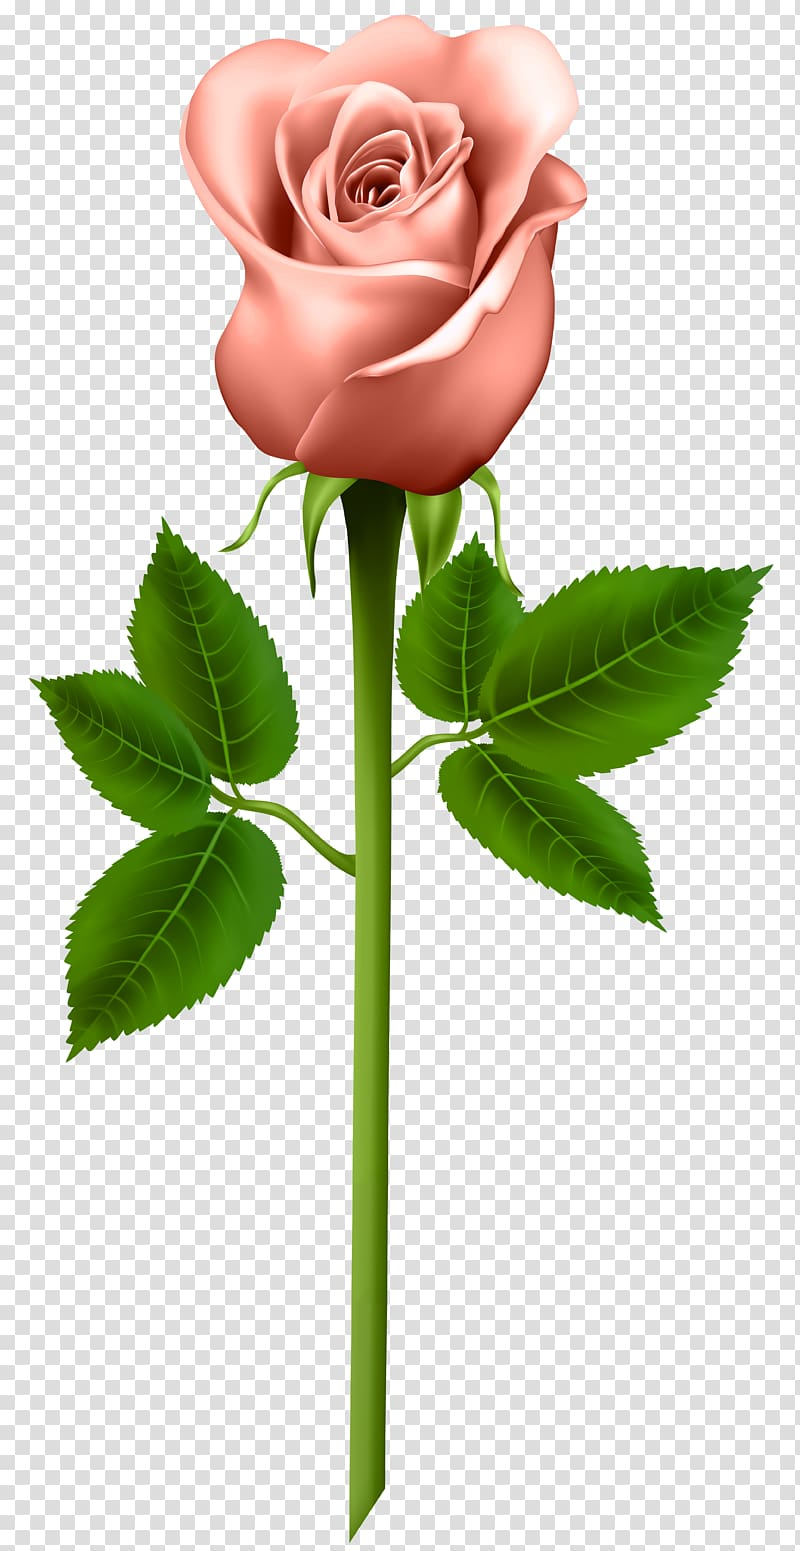 Pink and orange flower stem clipart vector free Pink rose flower , Rose Purple , Orange Rose transparent ... vector free